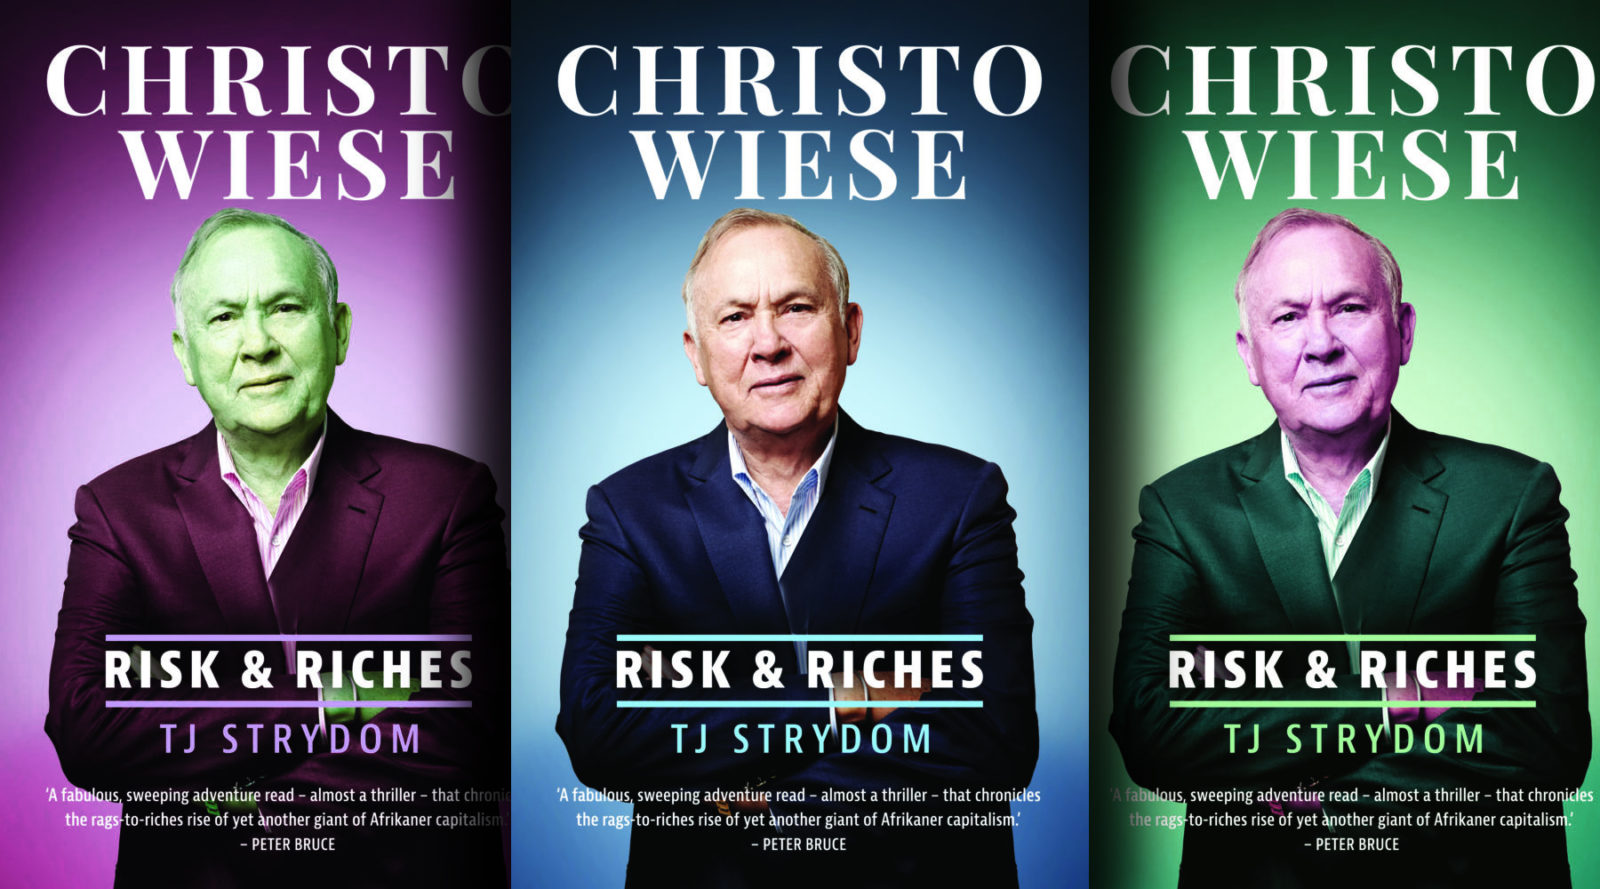 Christo wiese investments with high returns investment project financial analysis template